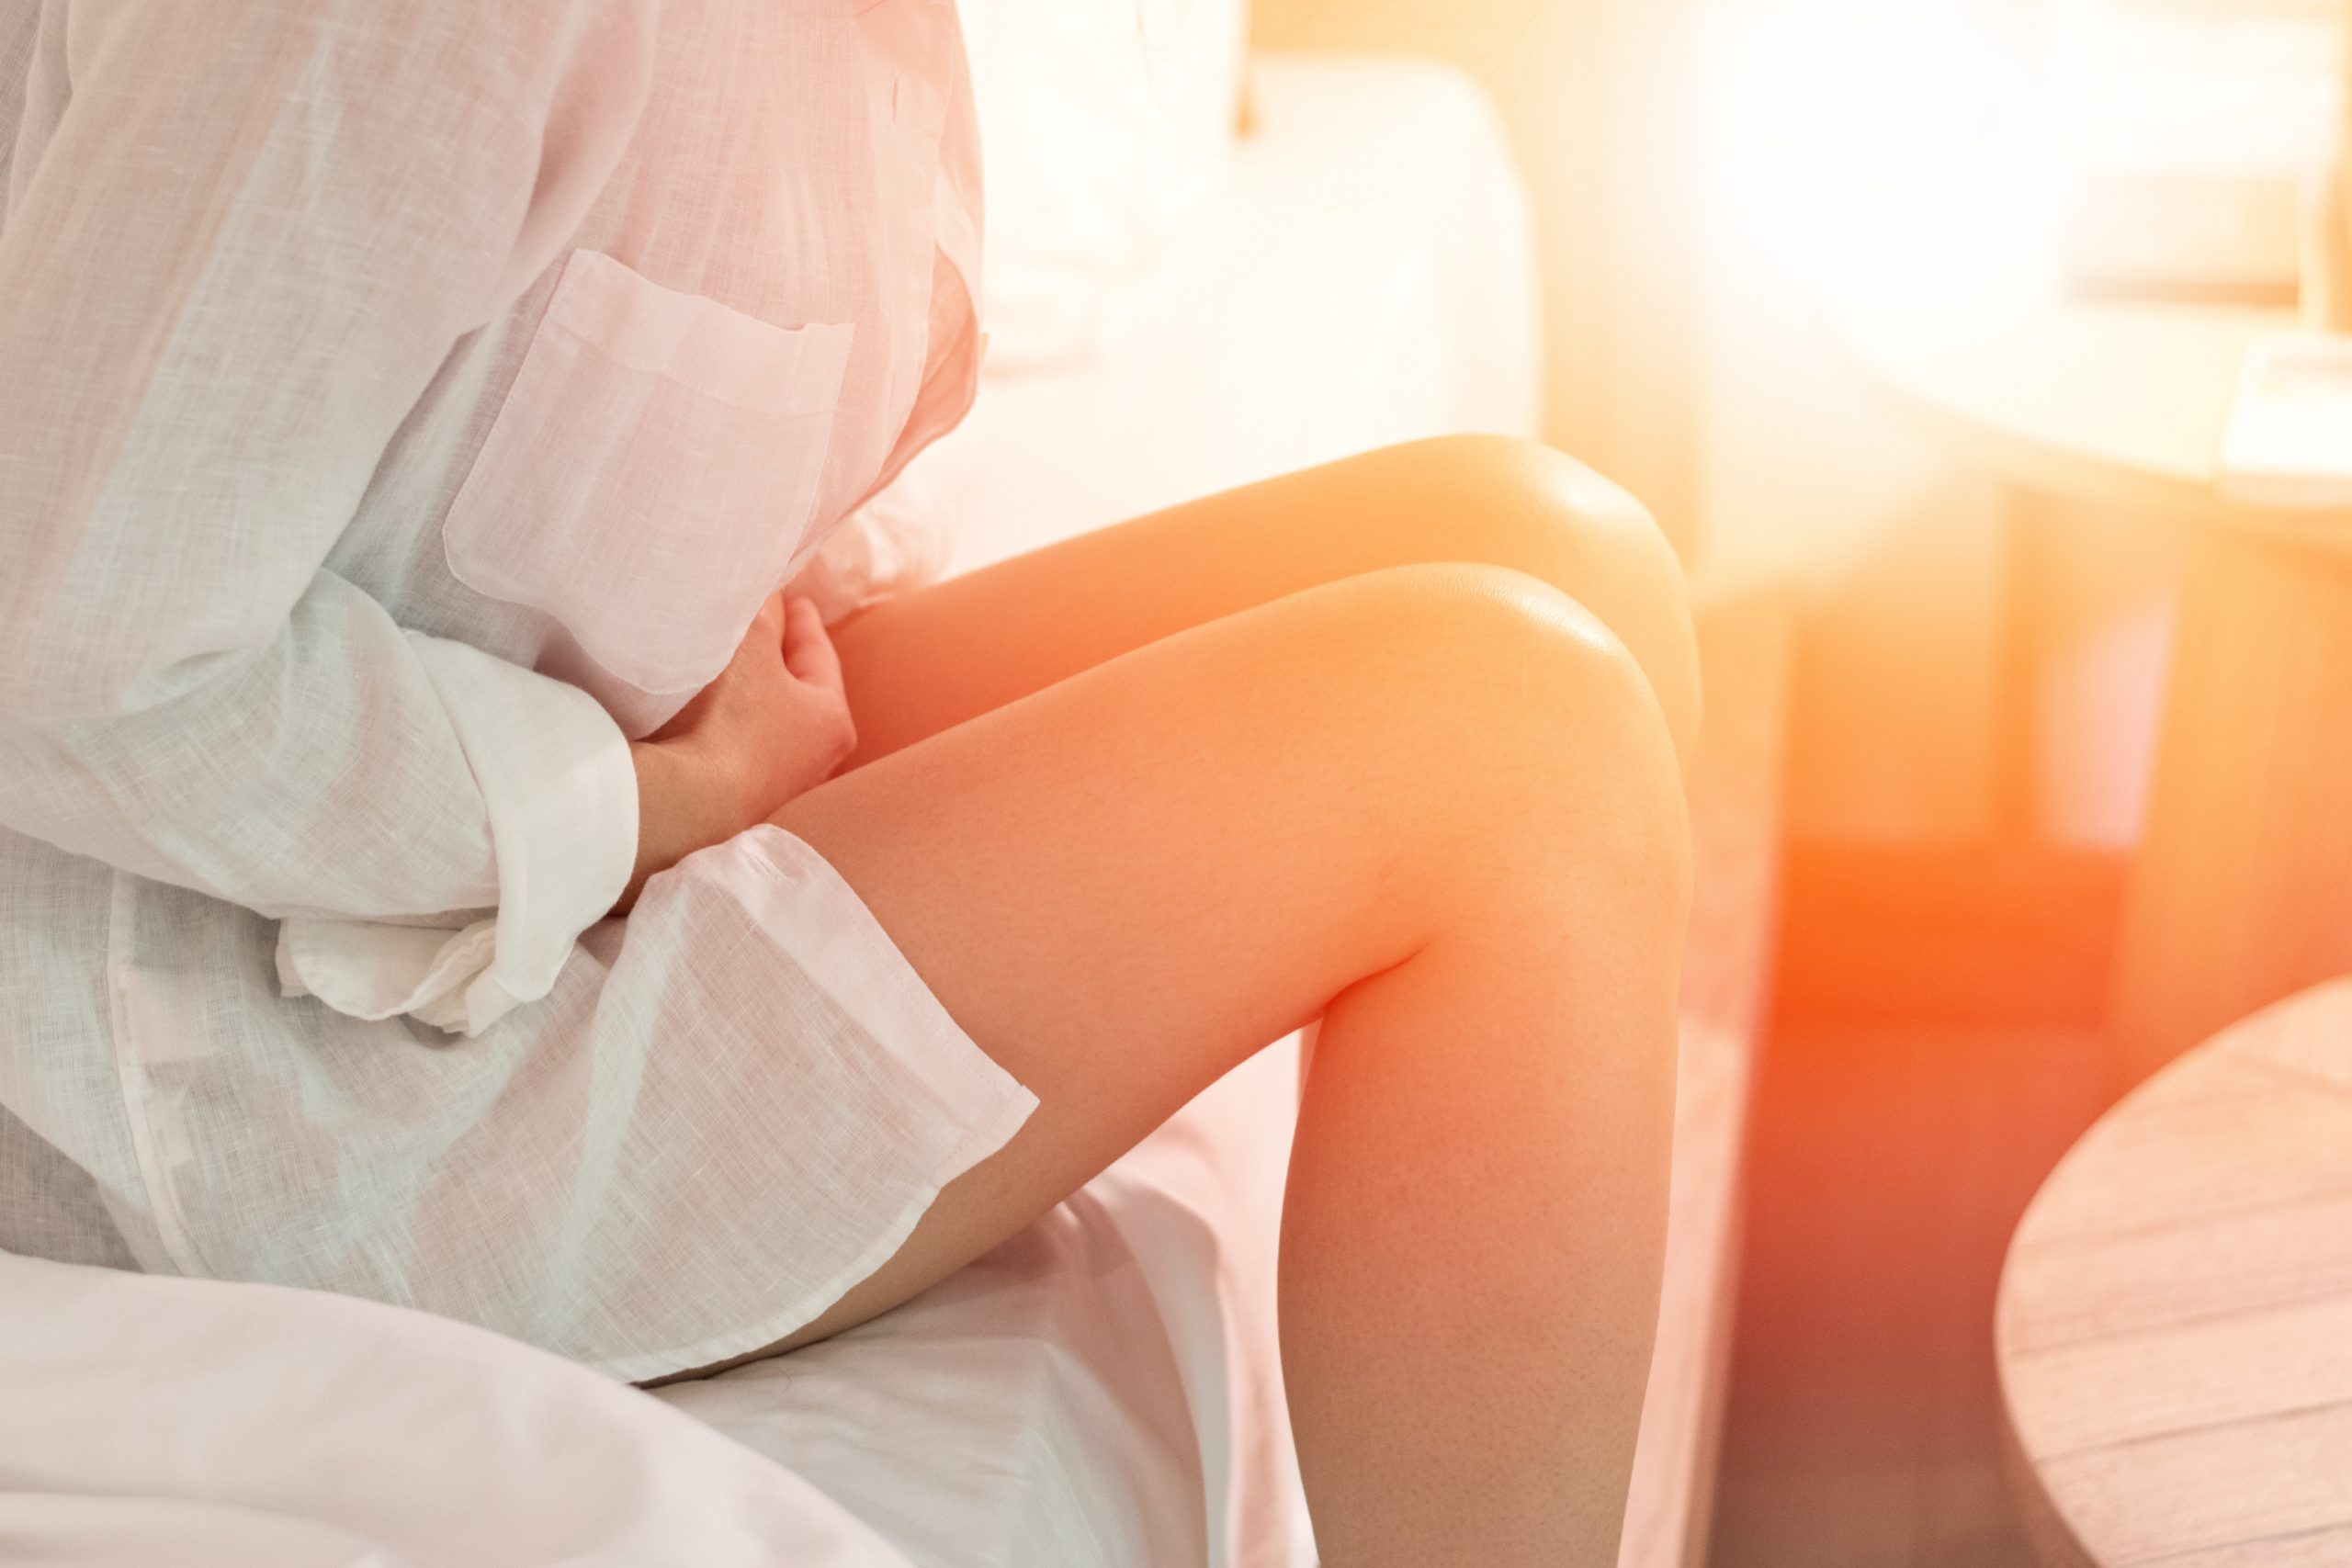 A Client's UROSPOT Experience with Endometriosis